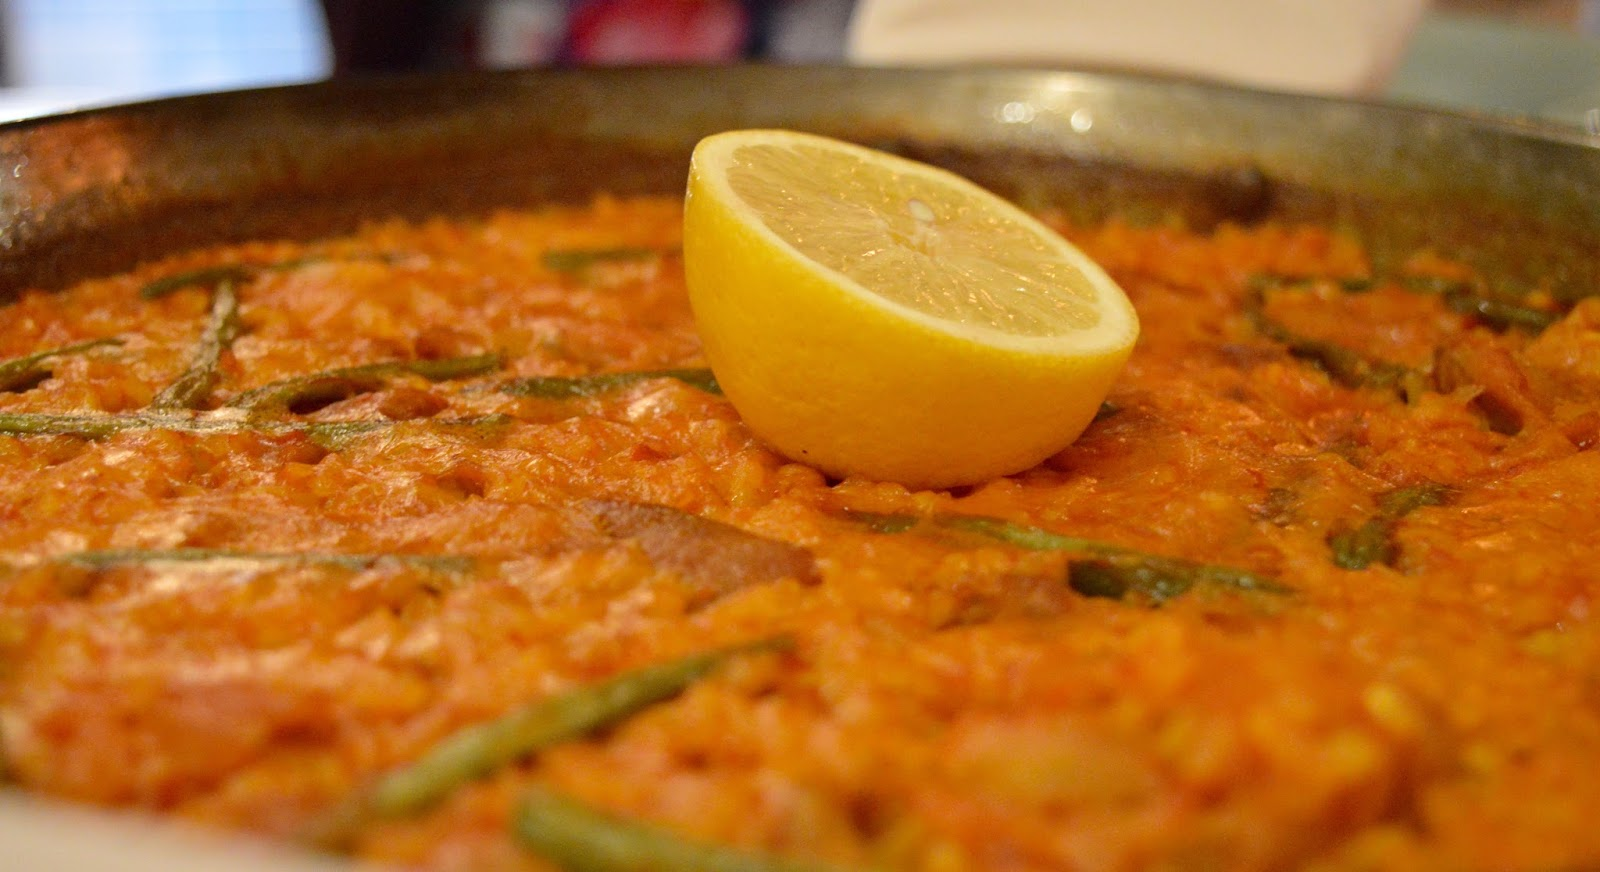 Tapas Revolution Newcastle at intu Eldon Square | Menu Review & Recommendations - authentic paella